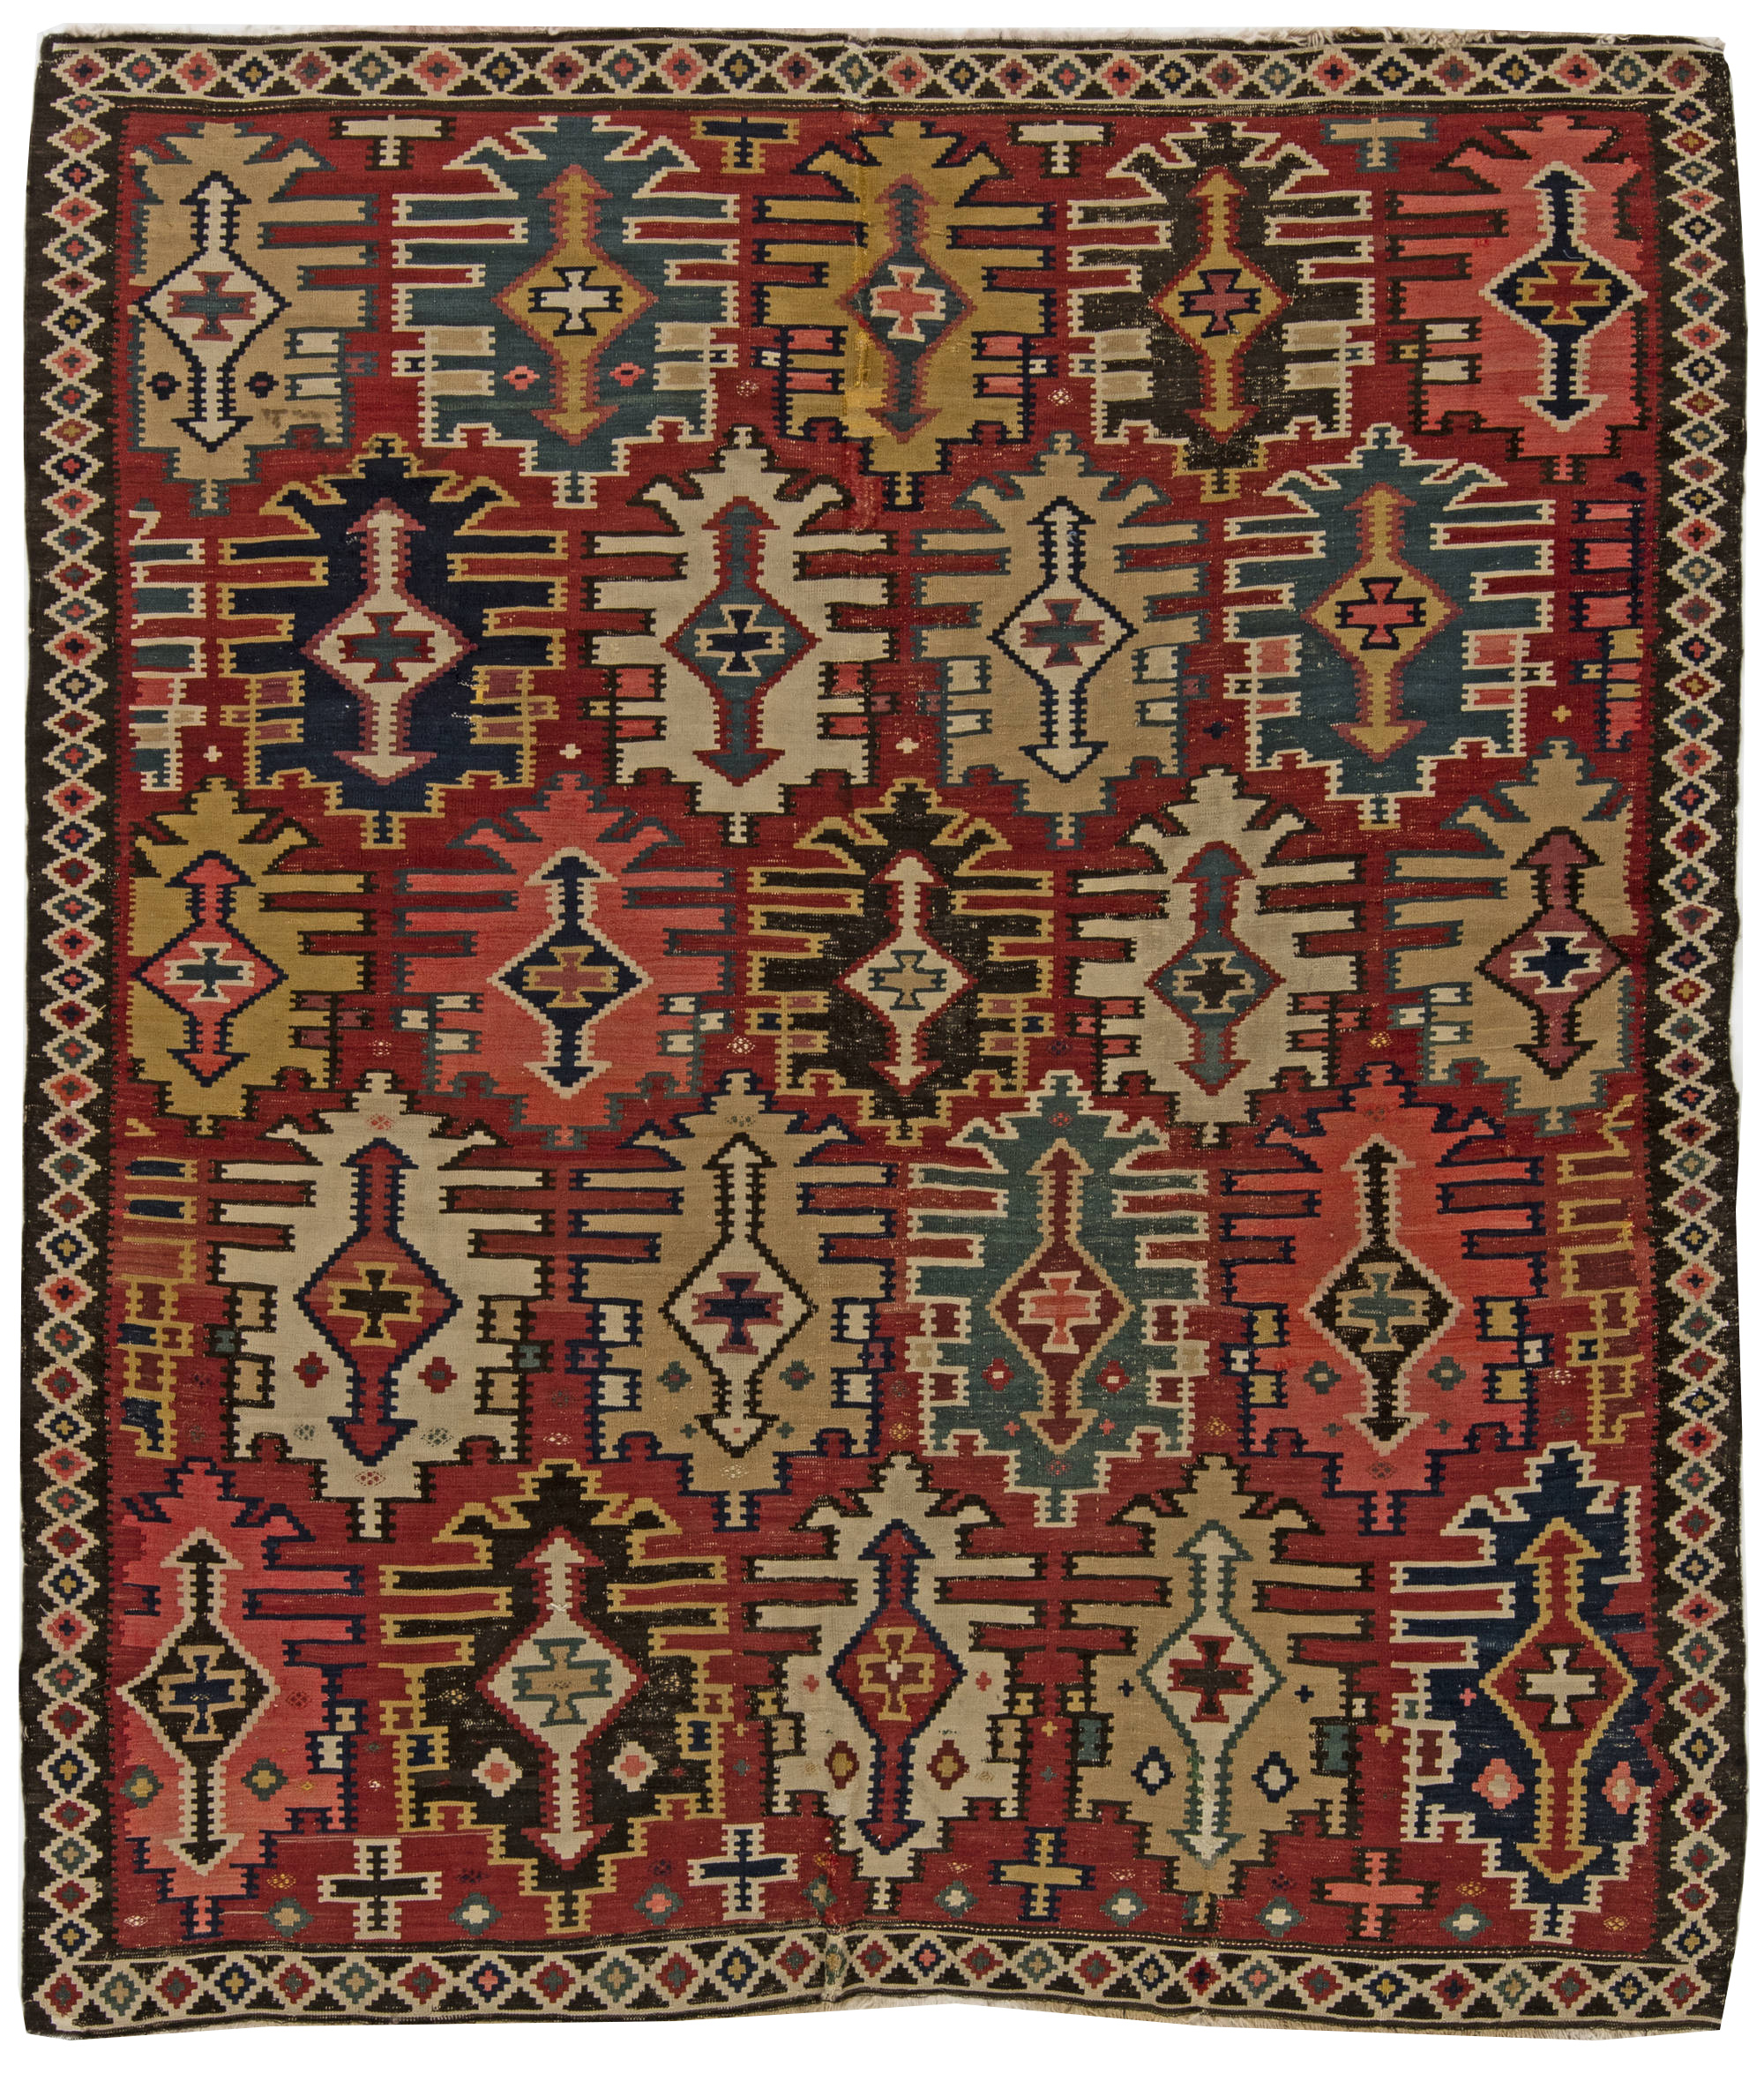 turkish rugs vintage turkish kilim rug bb6268. arrow down  47161db02bae4ef92bdede423862e8f0c2b91f81311572b5a8bb90eef3001a34 NRSBMCF